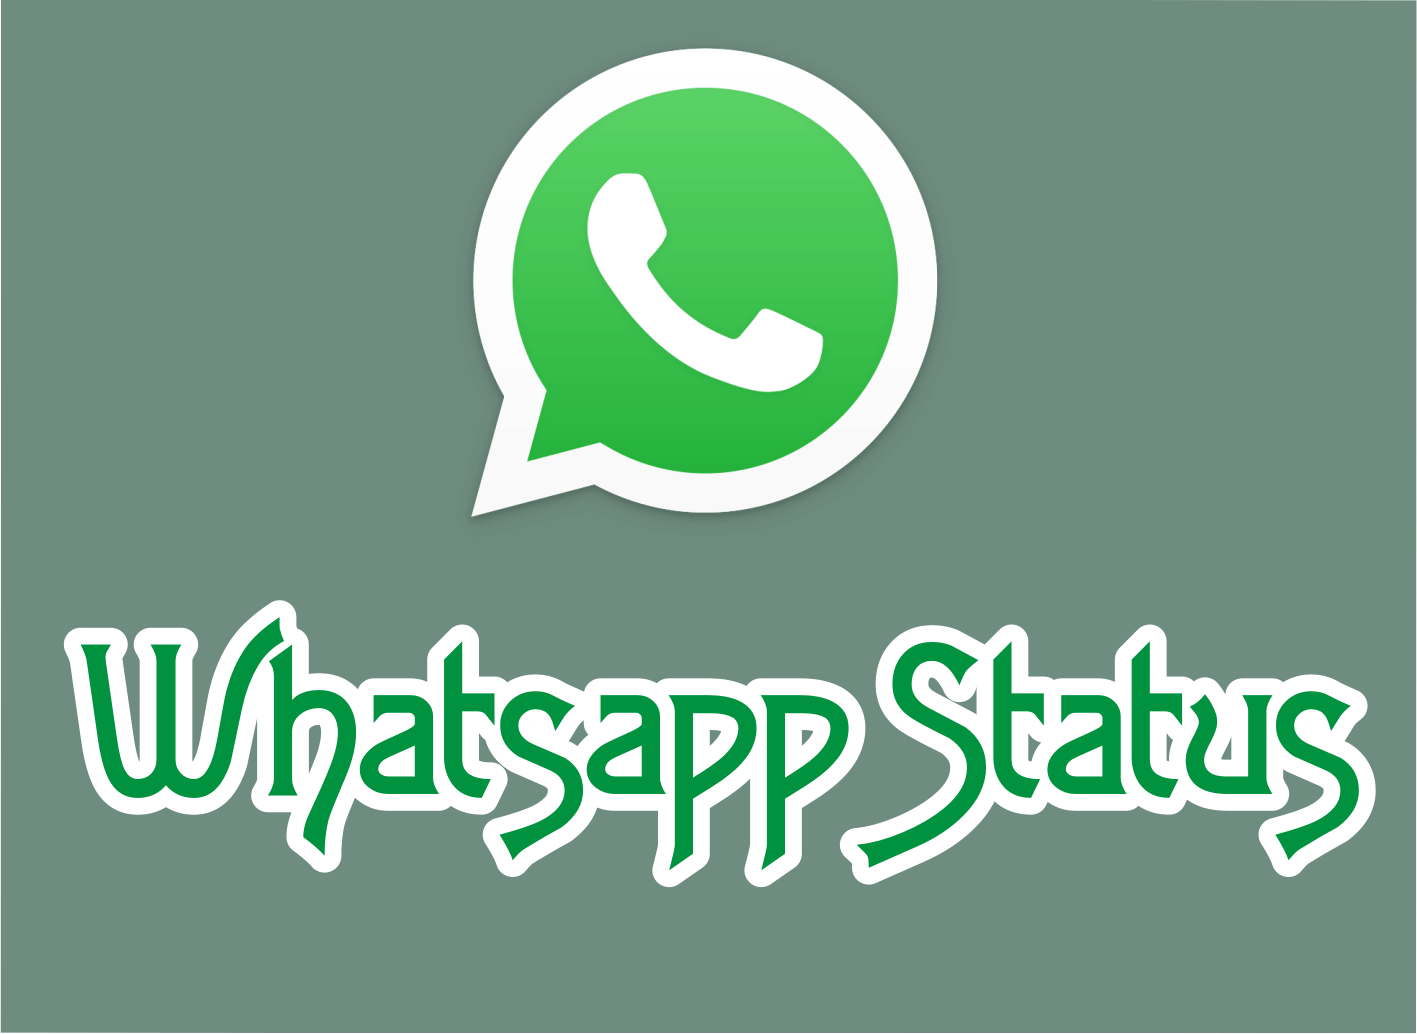 whatsappstatus